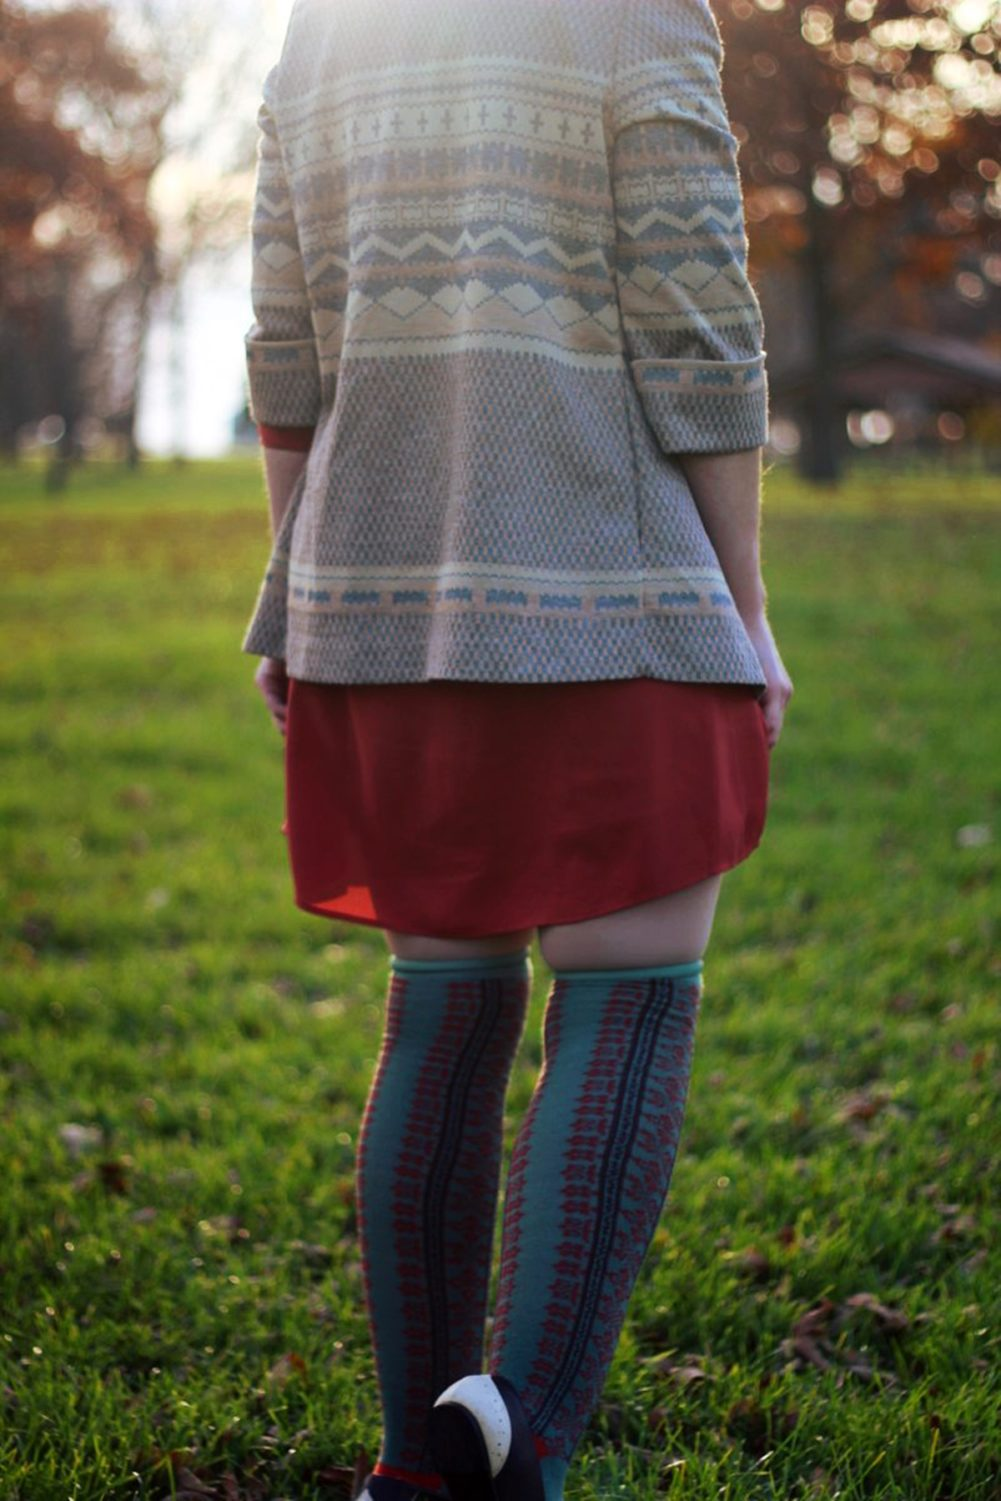 Outfit details: Orange dress, patterned cardigan, otk colorful socks